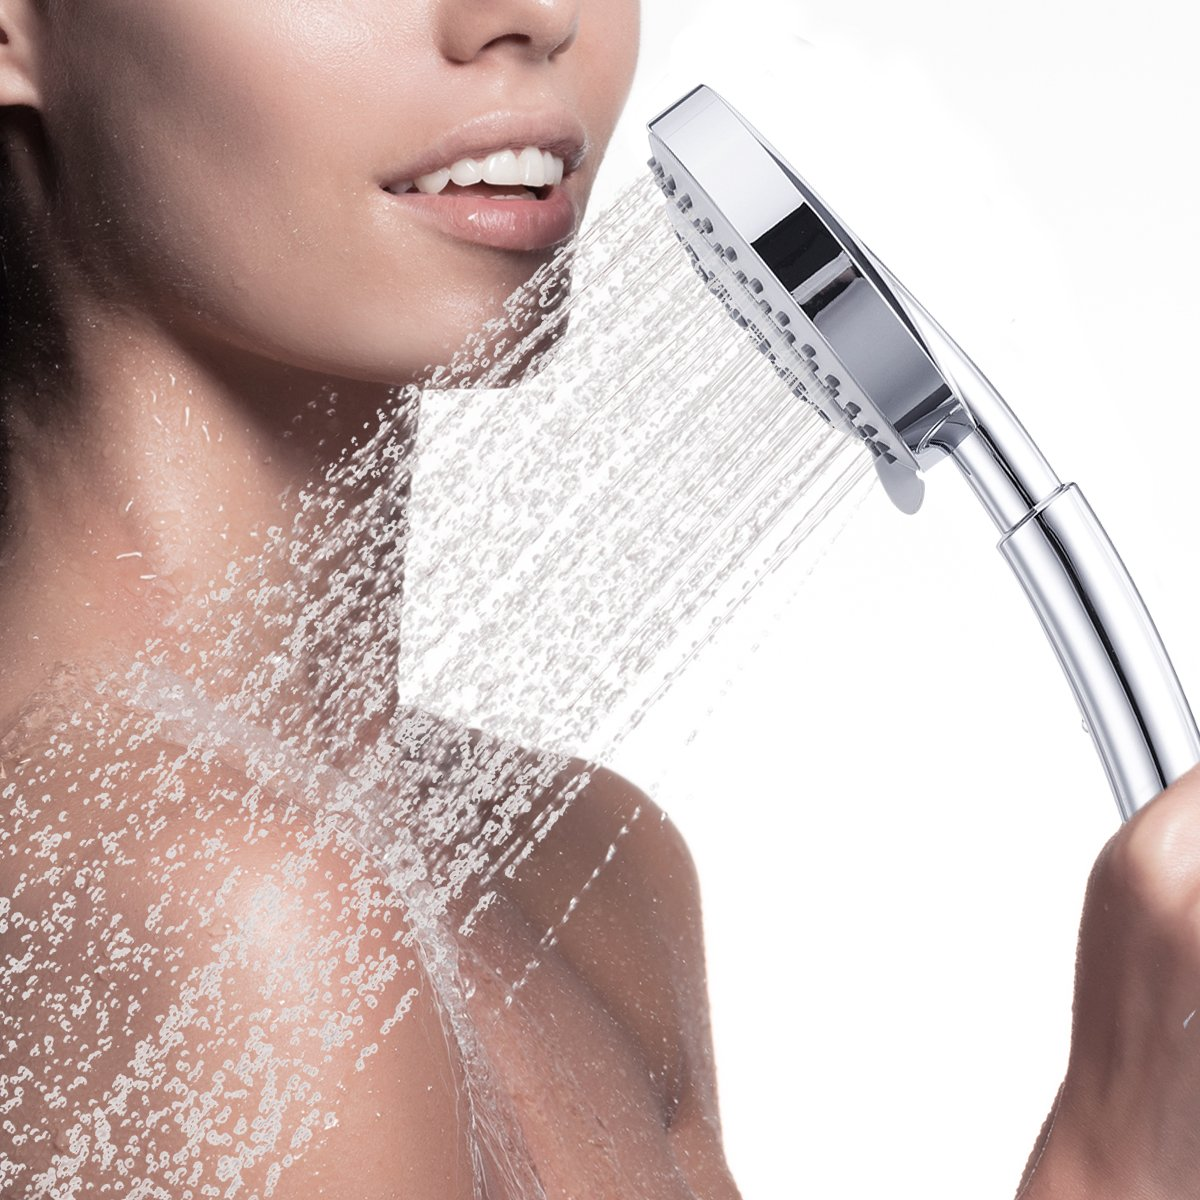 Chrome Moworve Full Flow Massage Rain Waterfall for Your Shower Experience Baban Handheld Shower Head High Pressure Luxury 8 Function Detachable Showerhead with Angle Adjustable Bracket /& Stretchable Hose